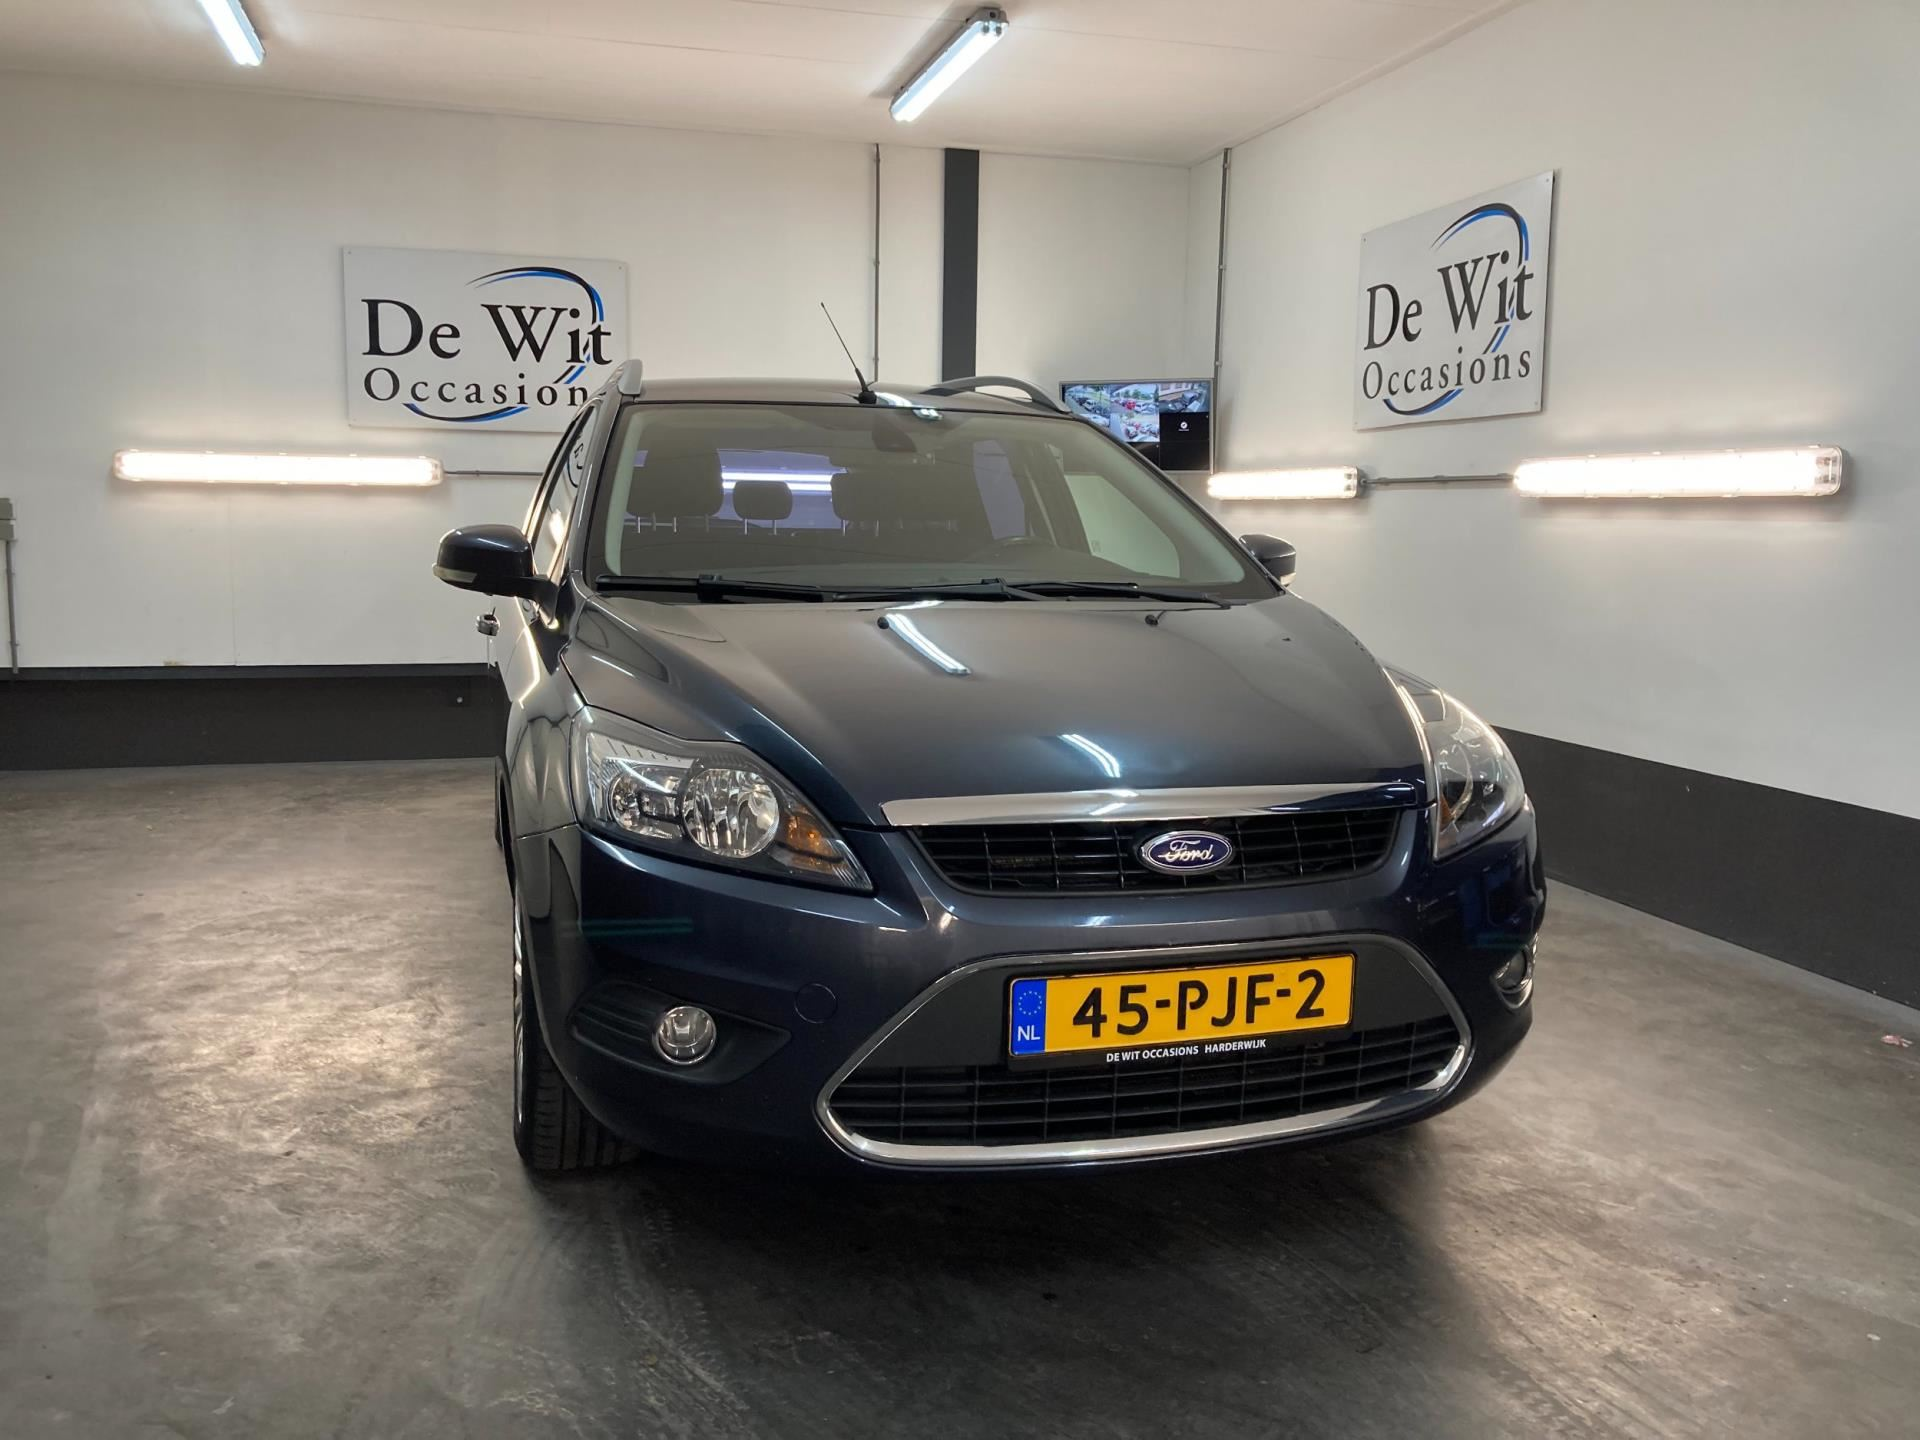 Ford Focus Wagon occasion - De Wit Occasions